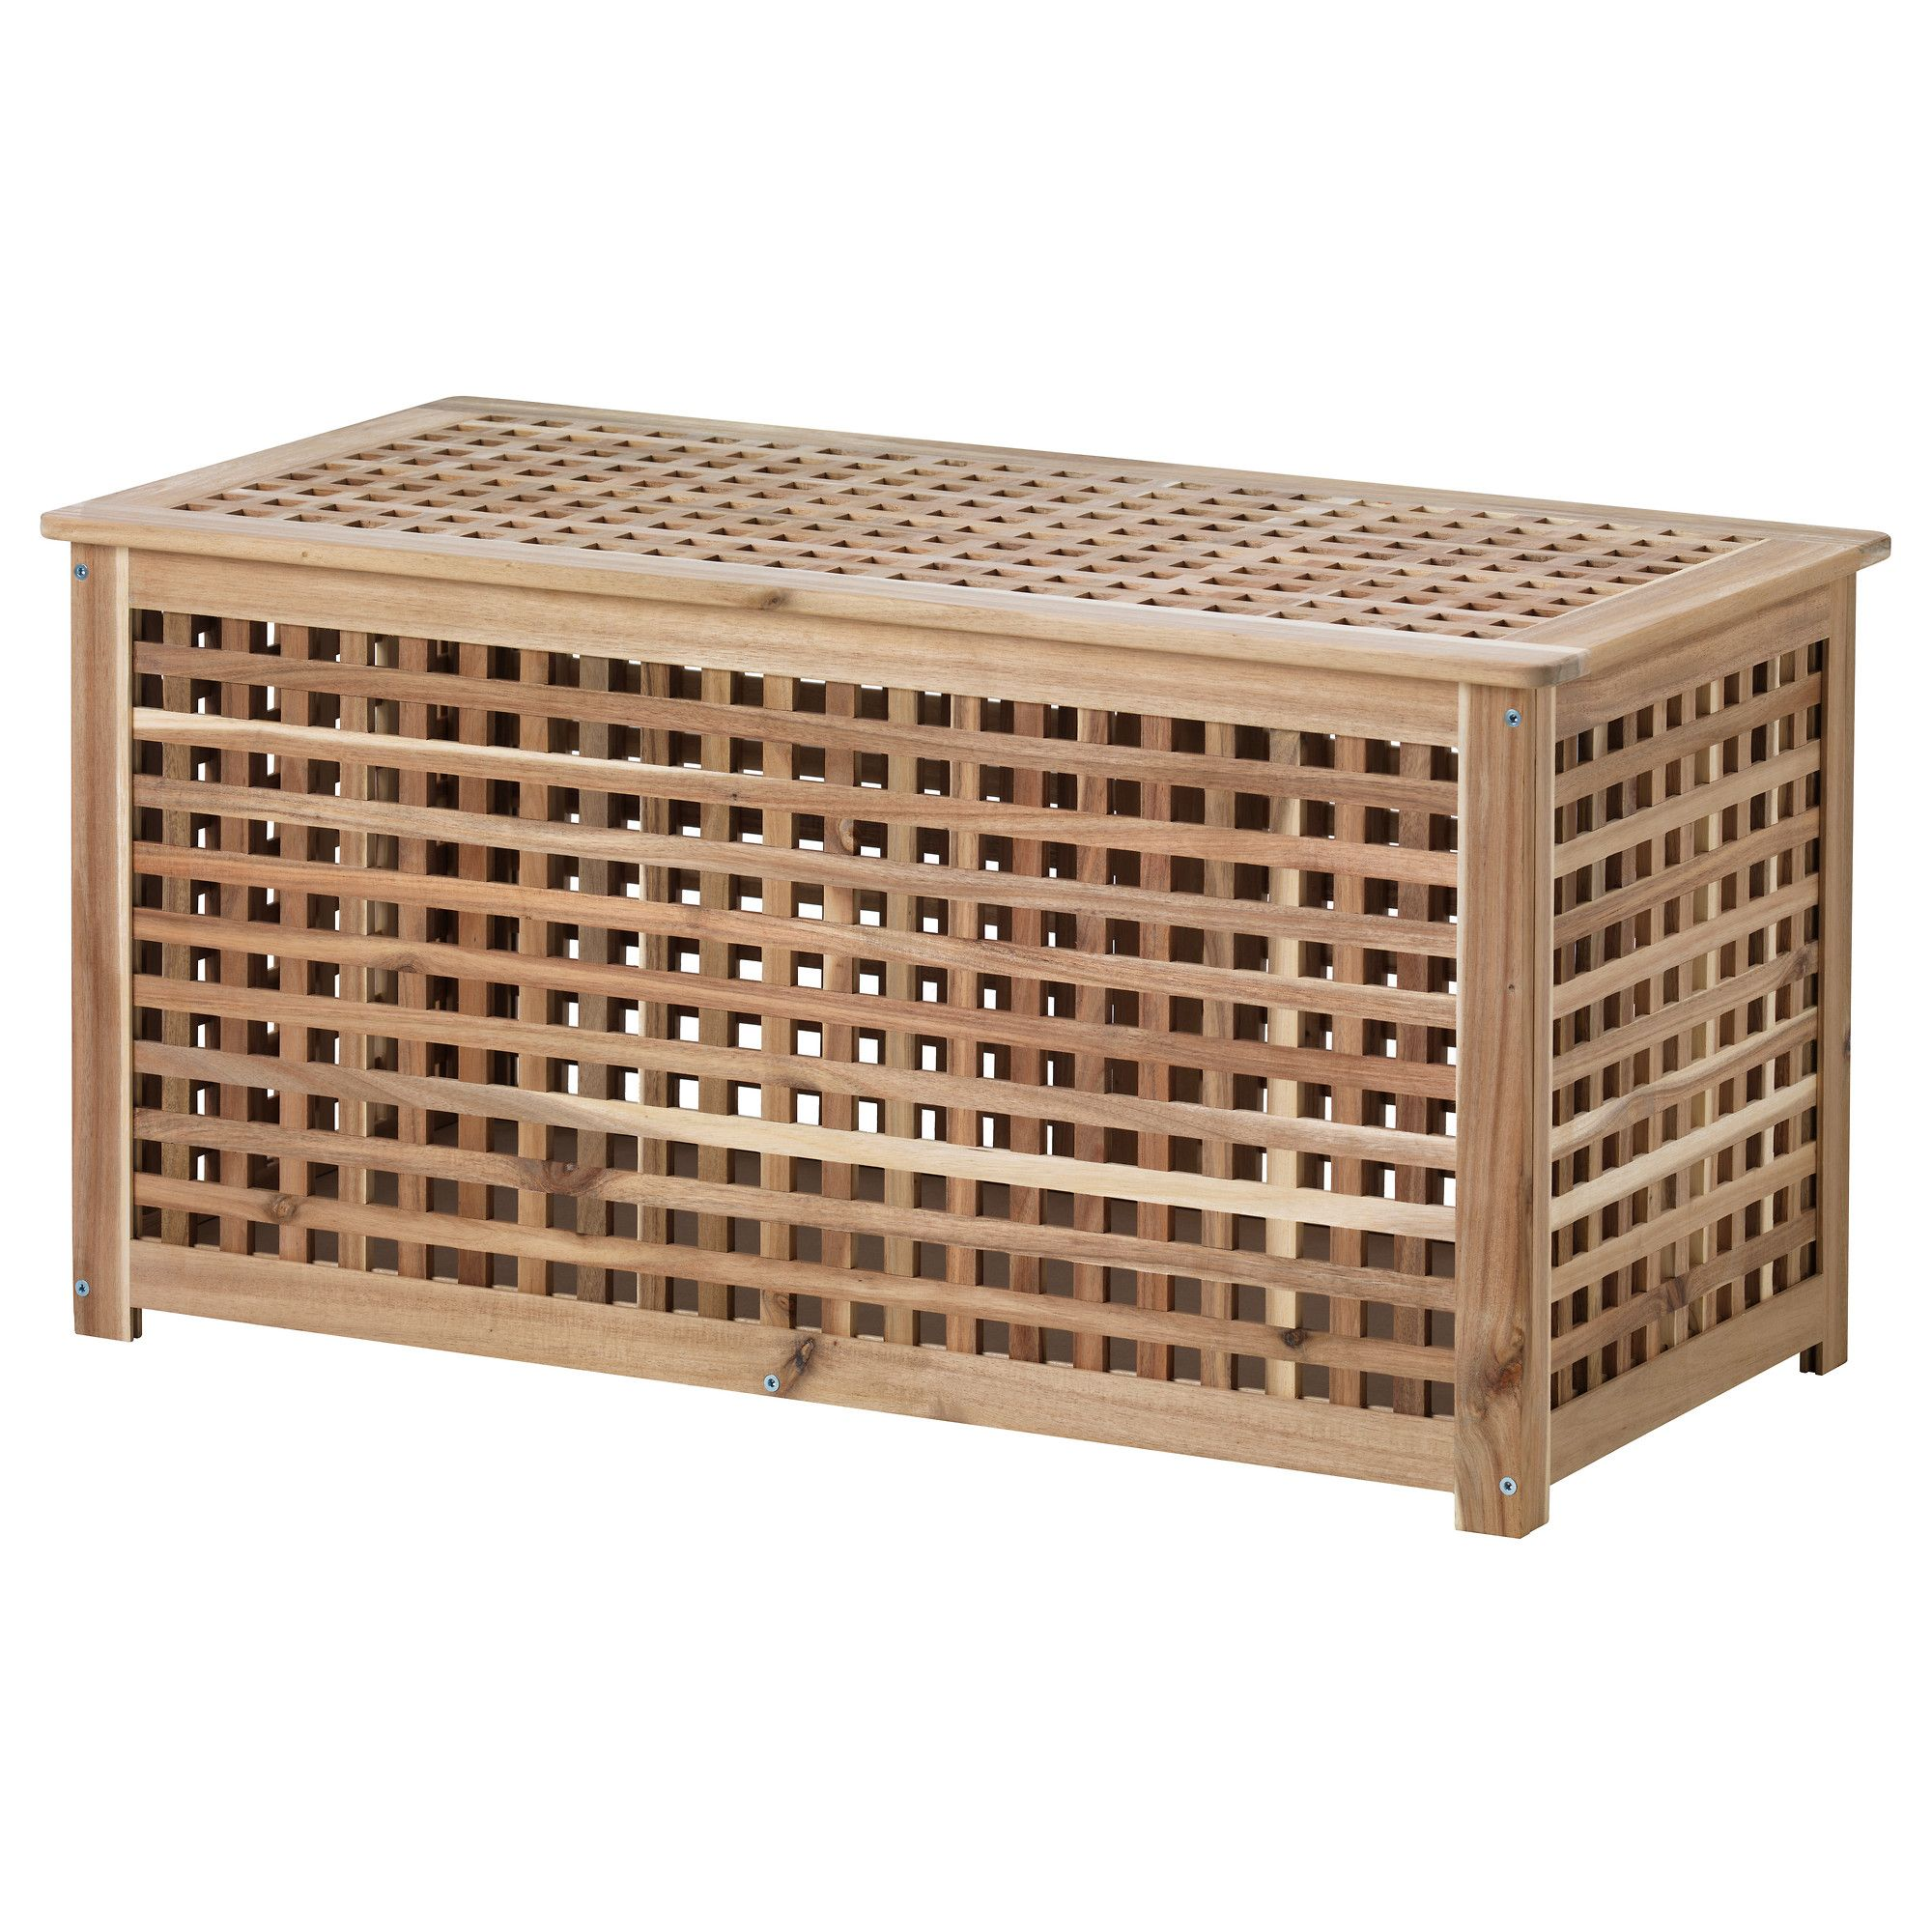 Hol bord med oppbevaringsplass akasie storage coffee table ikea hol storage table solid wood a durable natural materialactical storage space underneath the table top geotapseo Choice Image